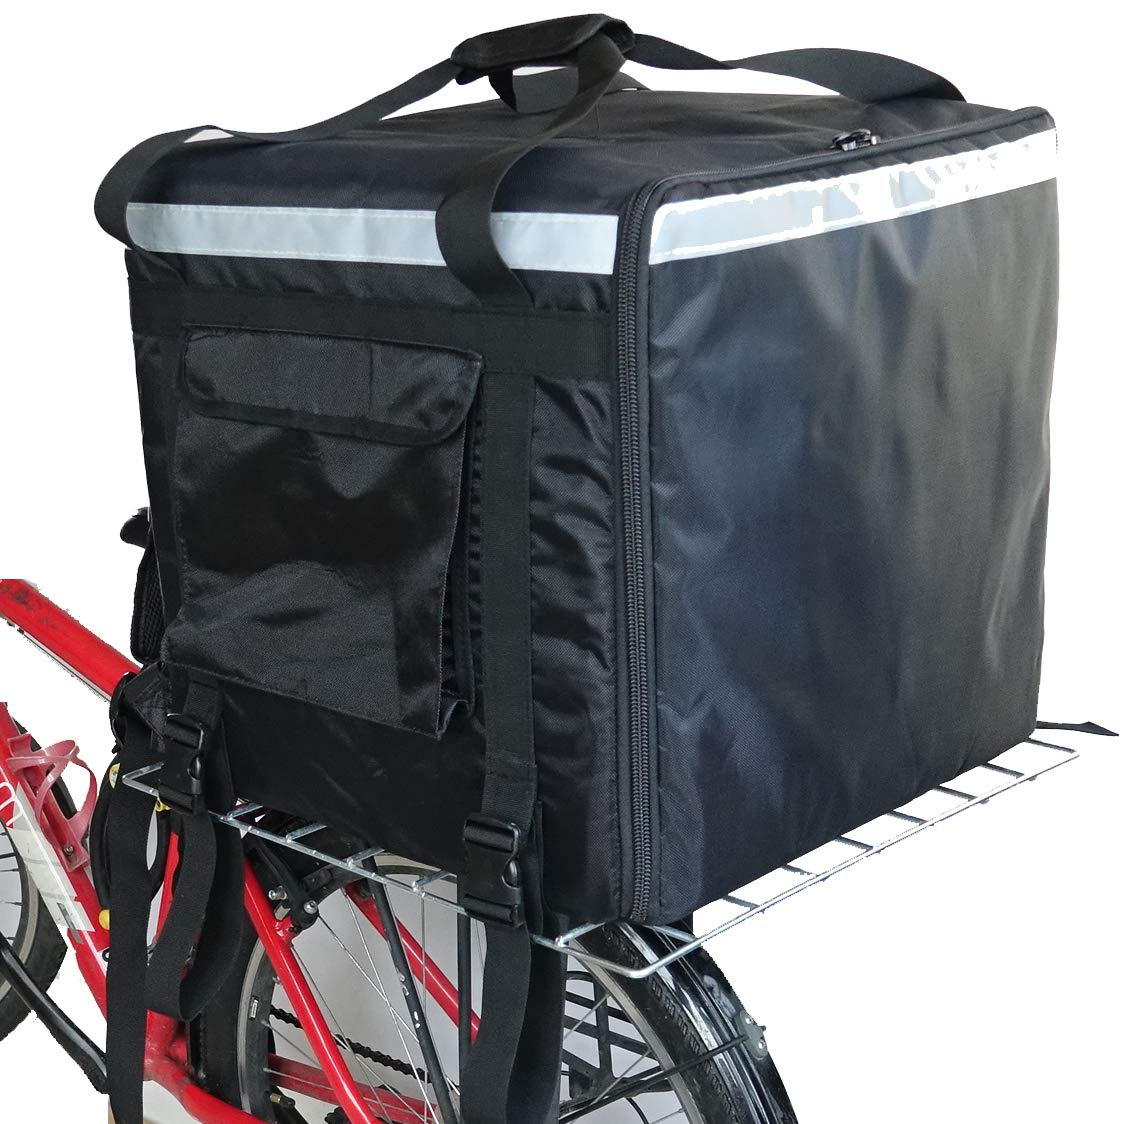 PK-140Z: Huge Heat Insulation Food Delivery Backpack, Big Pizza Delivery Bags, 2 Layers, Rigid Frame, Side Loading, 20